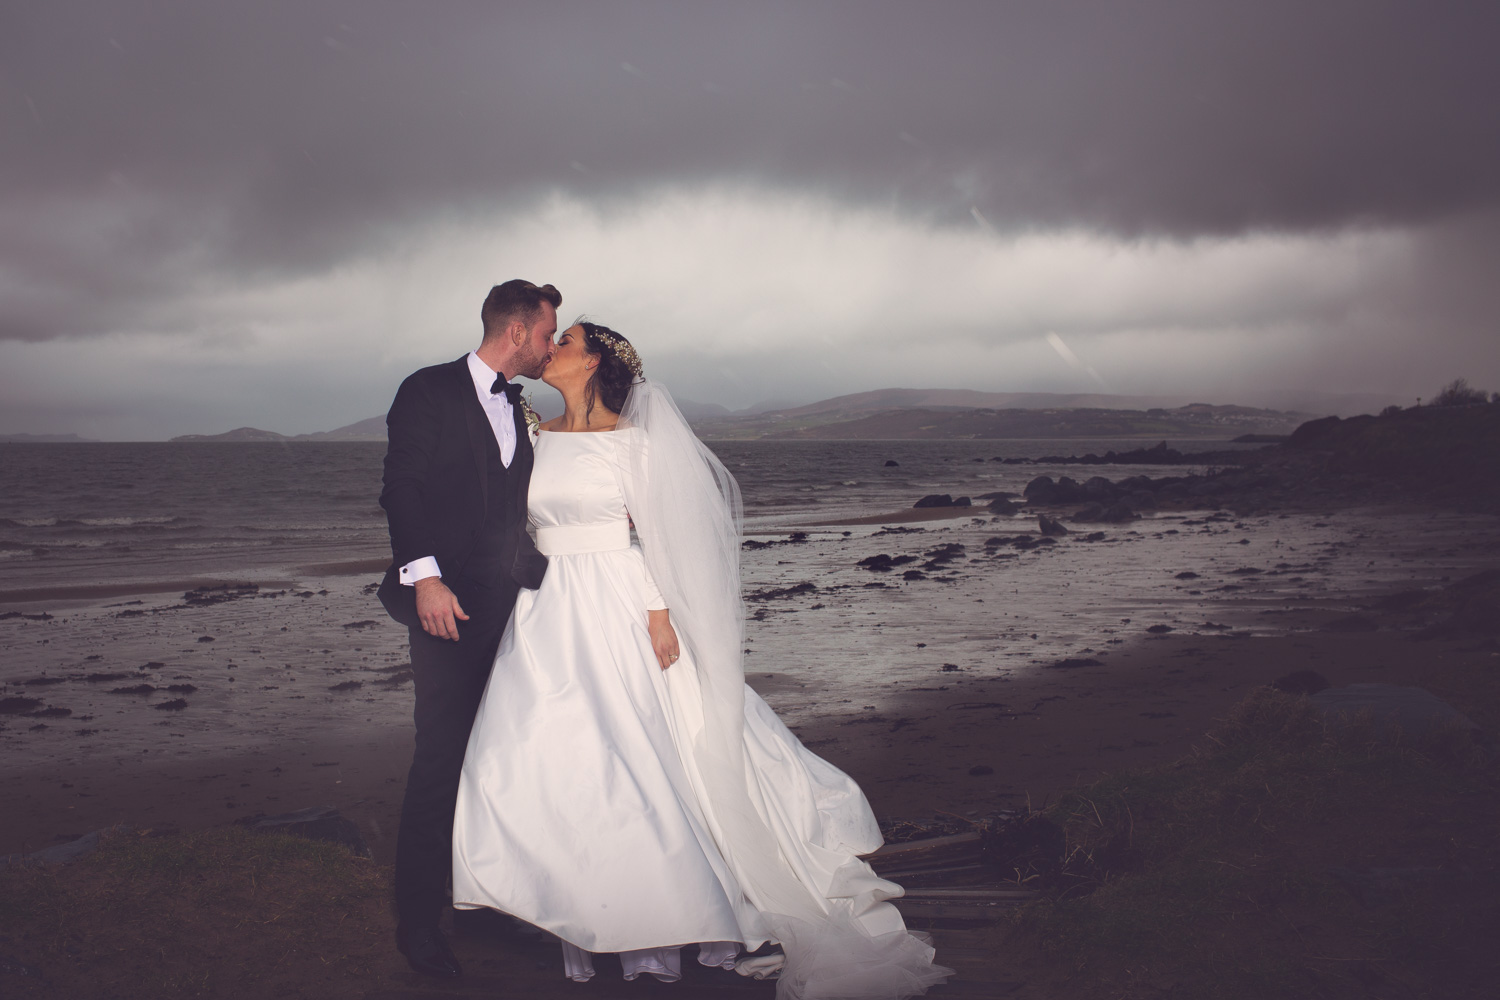 Mark_Barnes_Northern_Ireland_wedding_photographer_Innishowen_Gateway_Donegal_Wedding_photography_Donegal_wedding_photographer-42.jpg